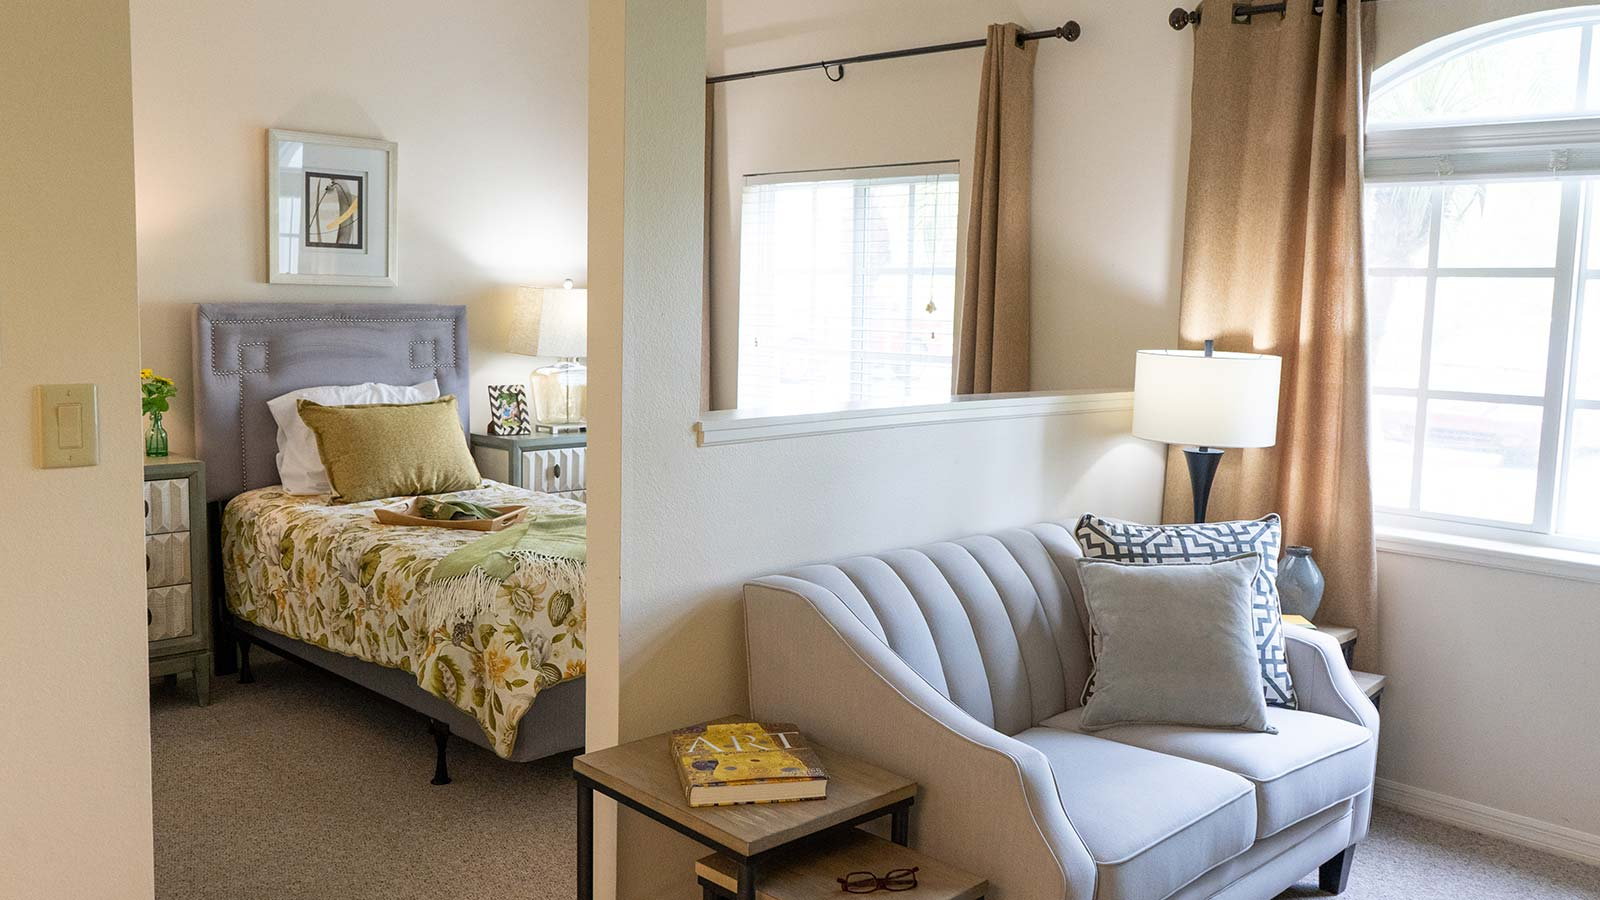 Model apartment bedroom and living room at Heron Club assisted living and memory care in Sarasota Florida